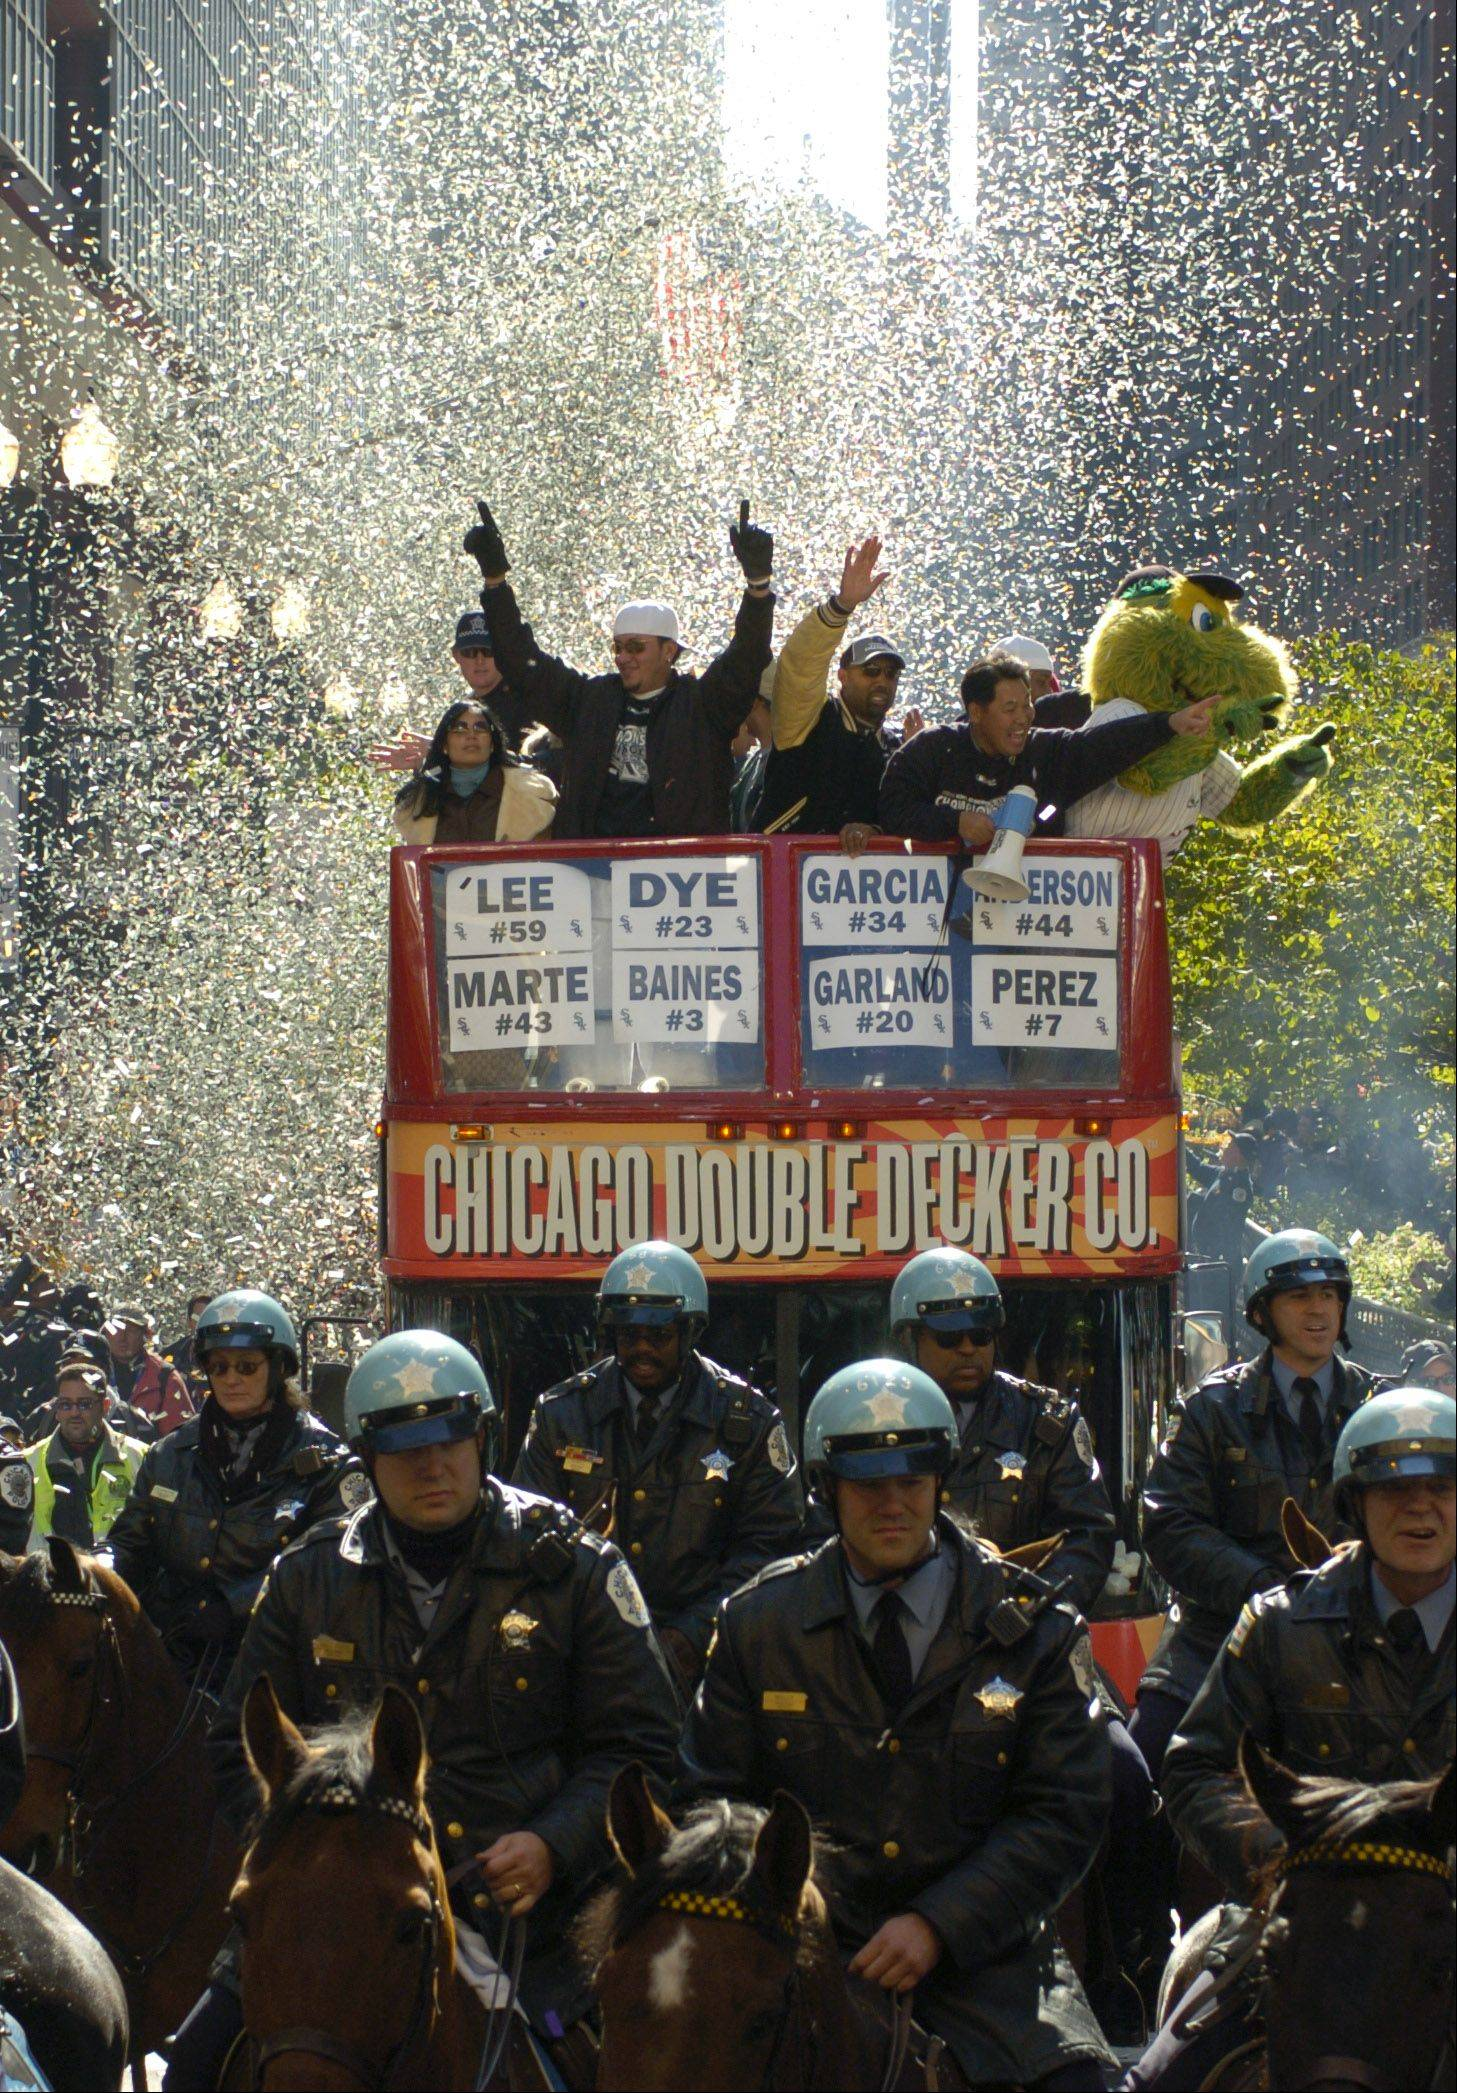 The Chicago White Sox during their victory ticker tape parade in Chicago lead by Sox pitcher Freddy Garcia.